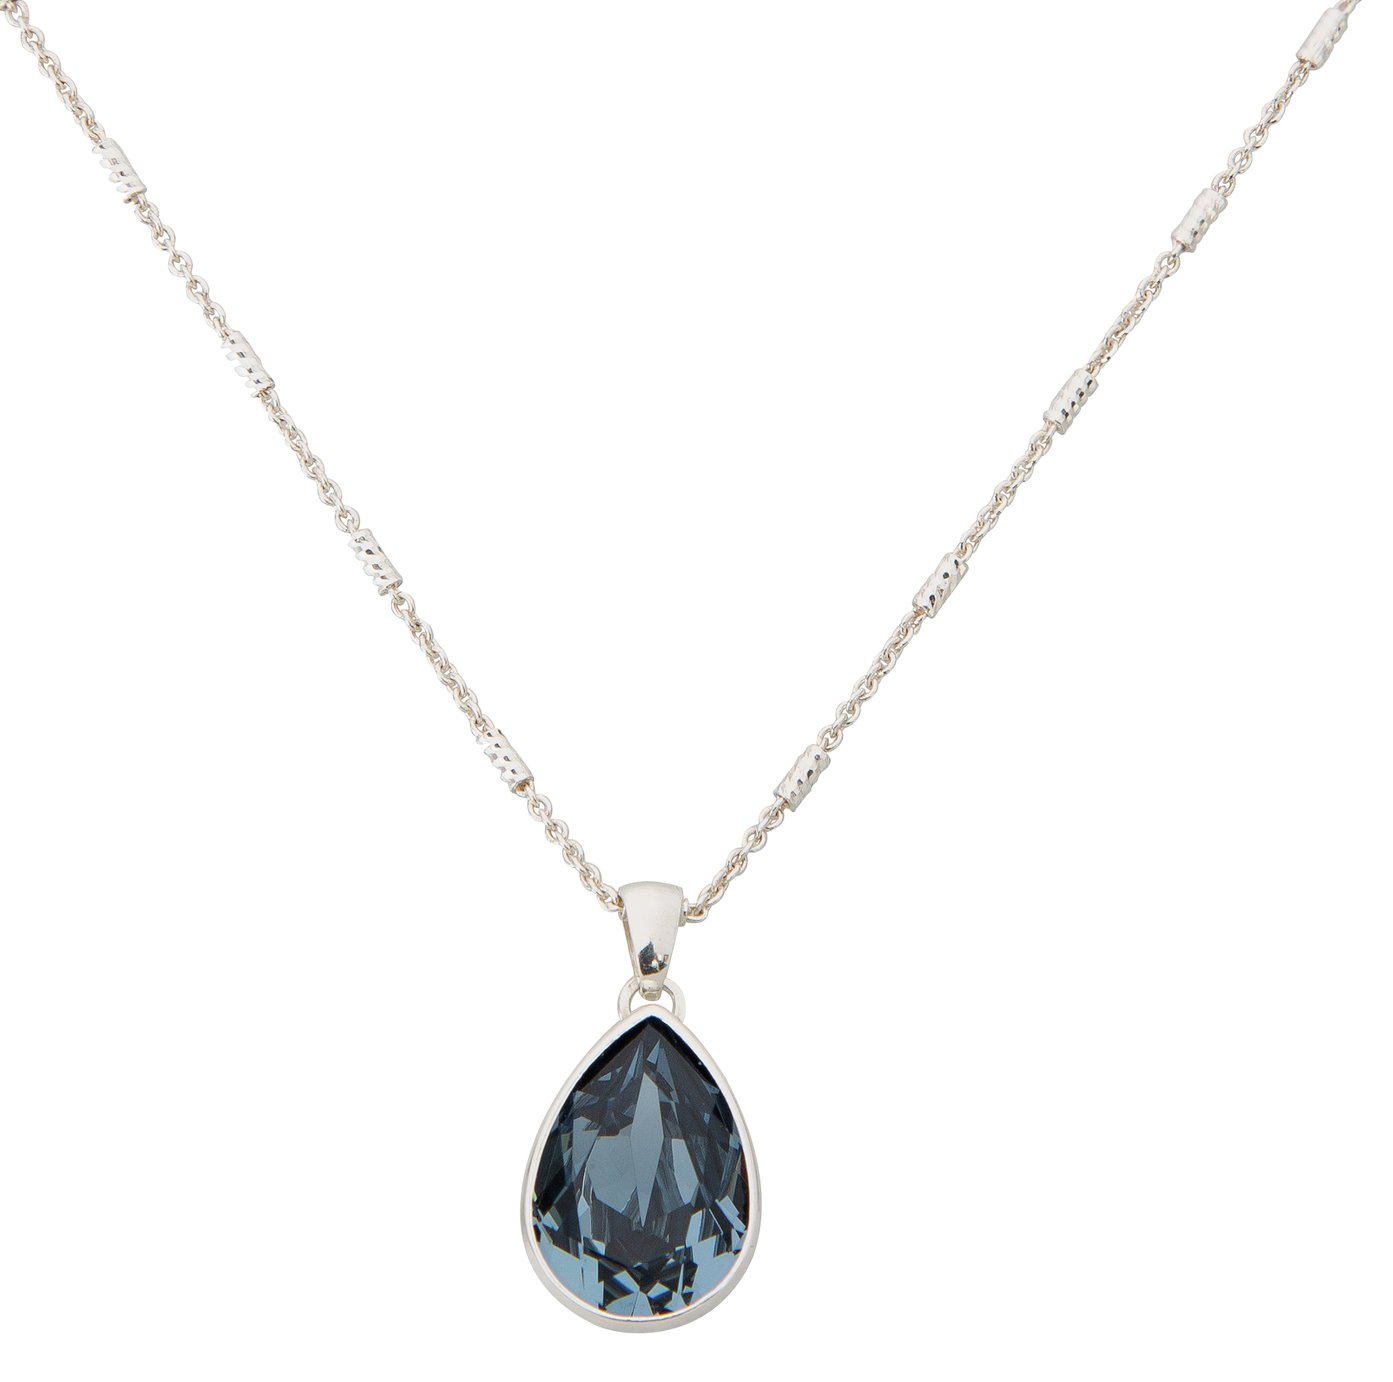 Image of Davvero - Sterling Silver - Blue Crystal Drop Pendant.